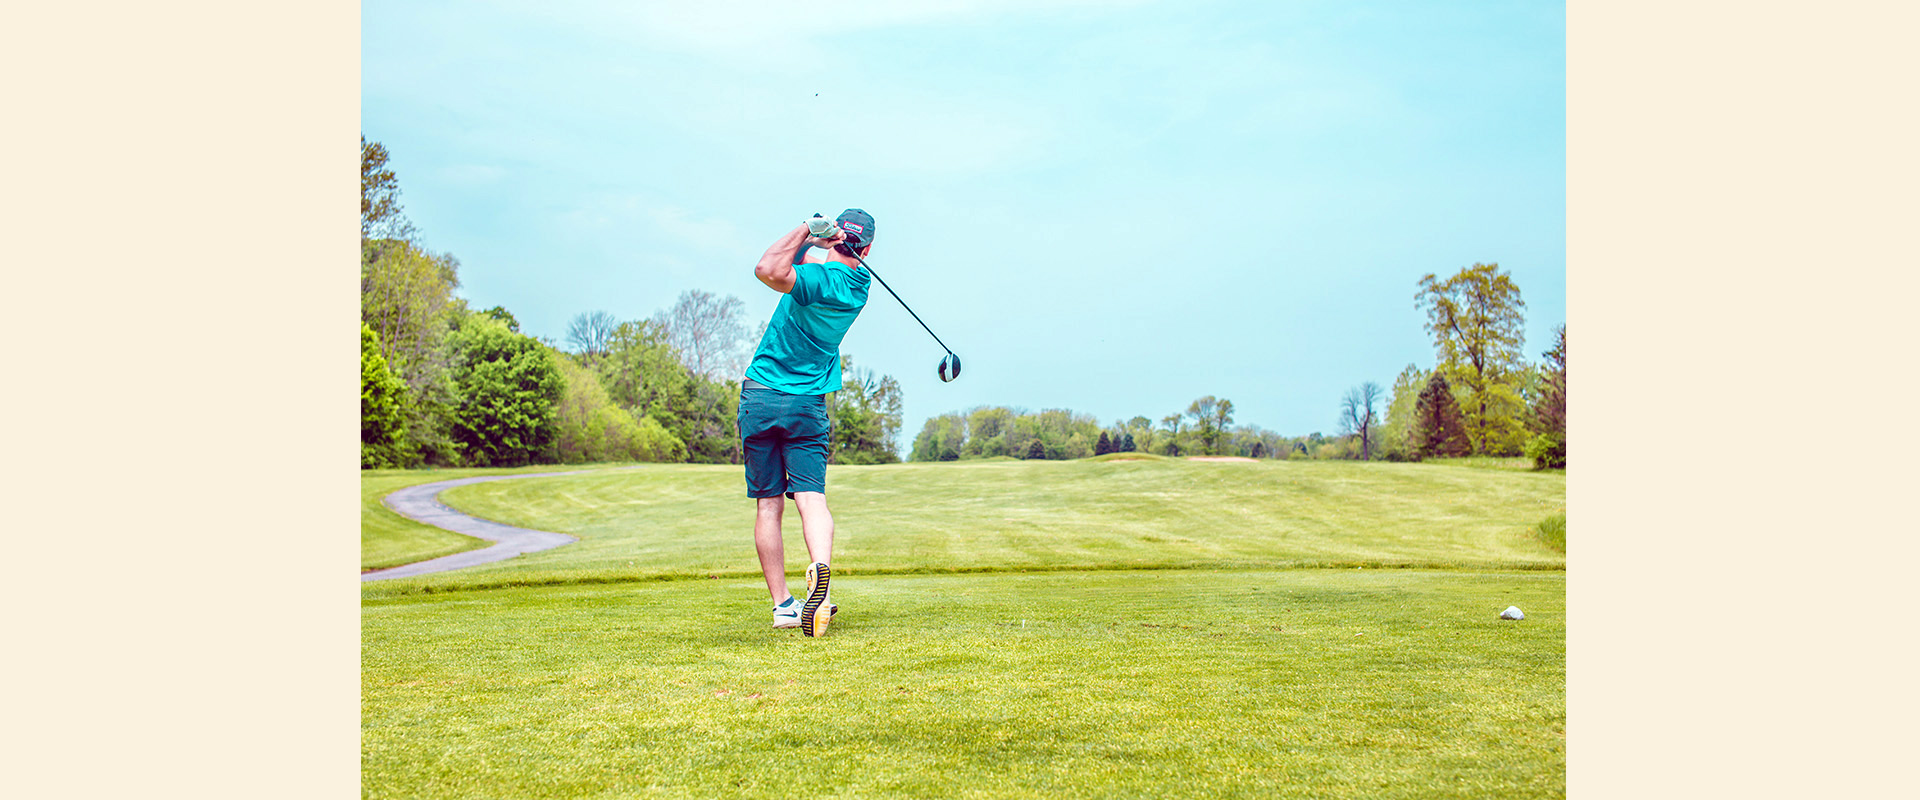 bconnected-blog-Beneficios de jugar al golf